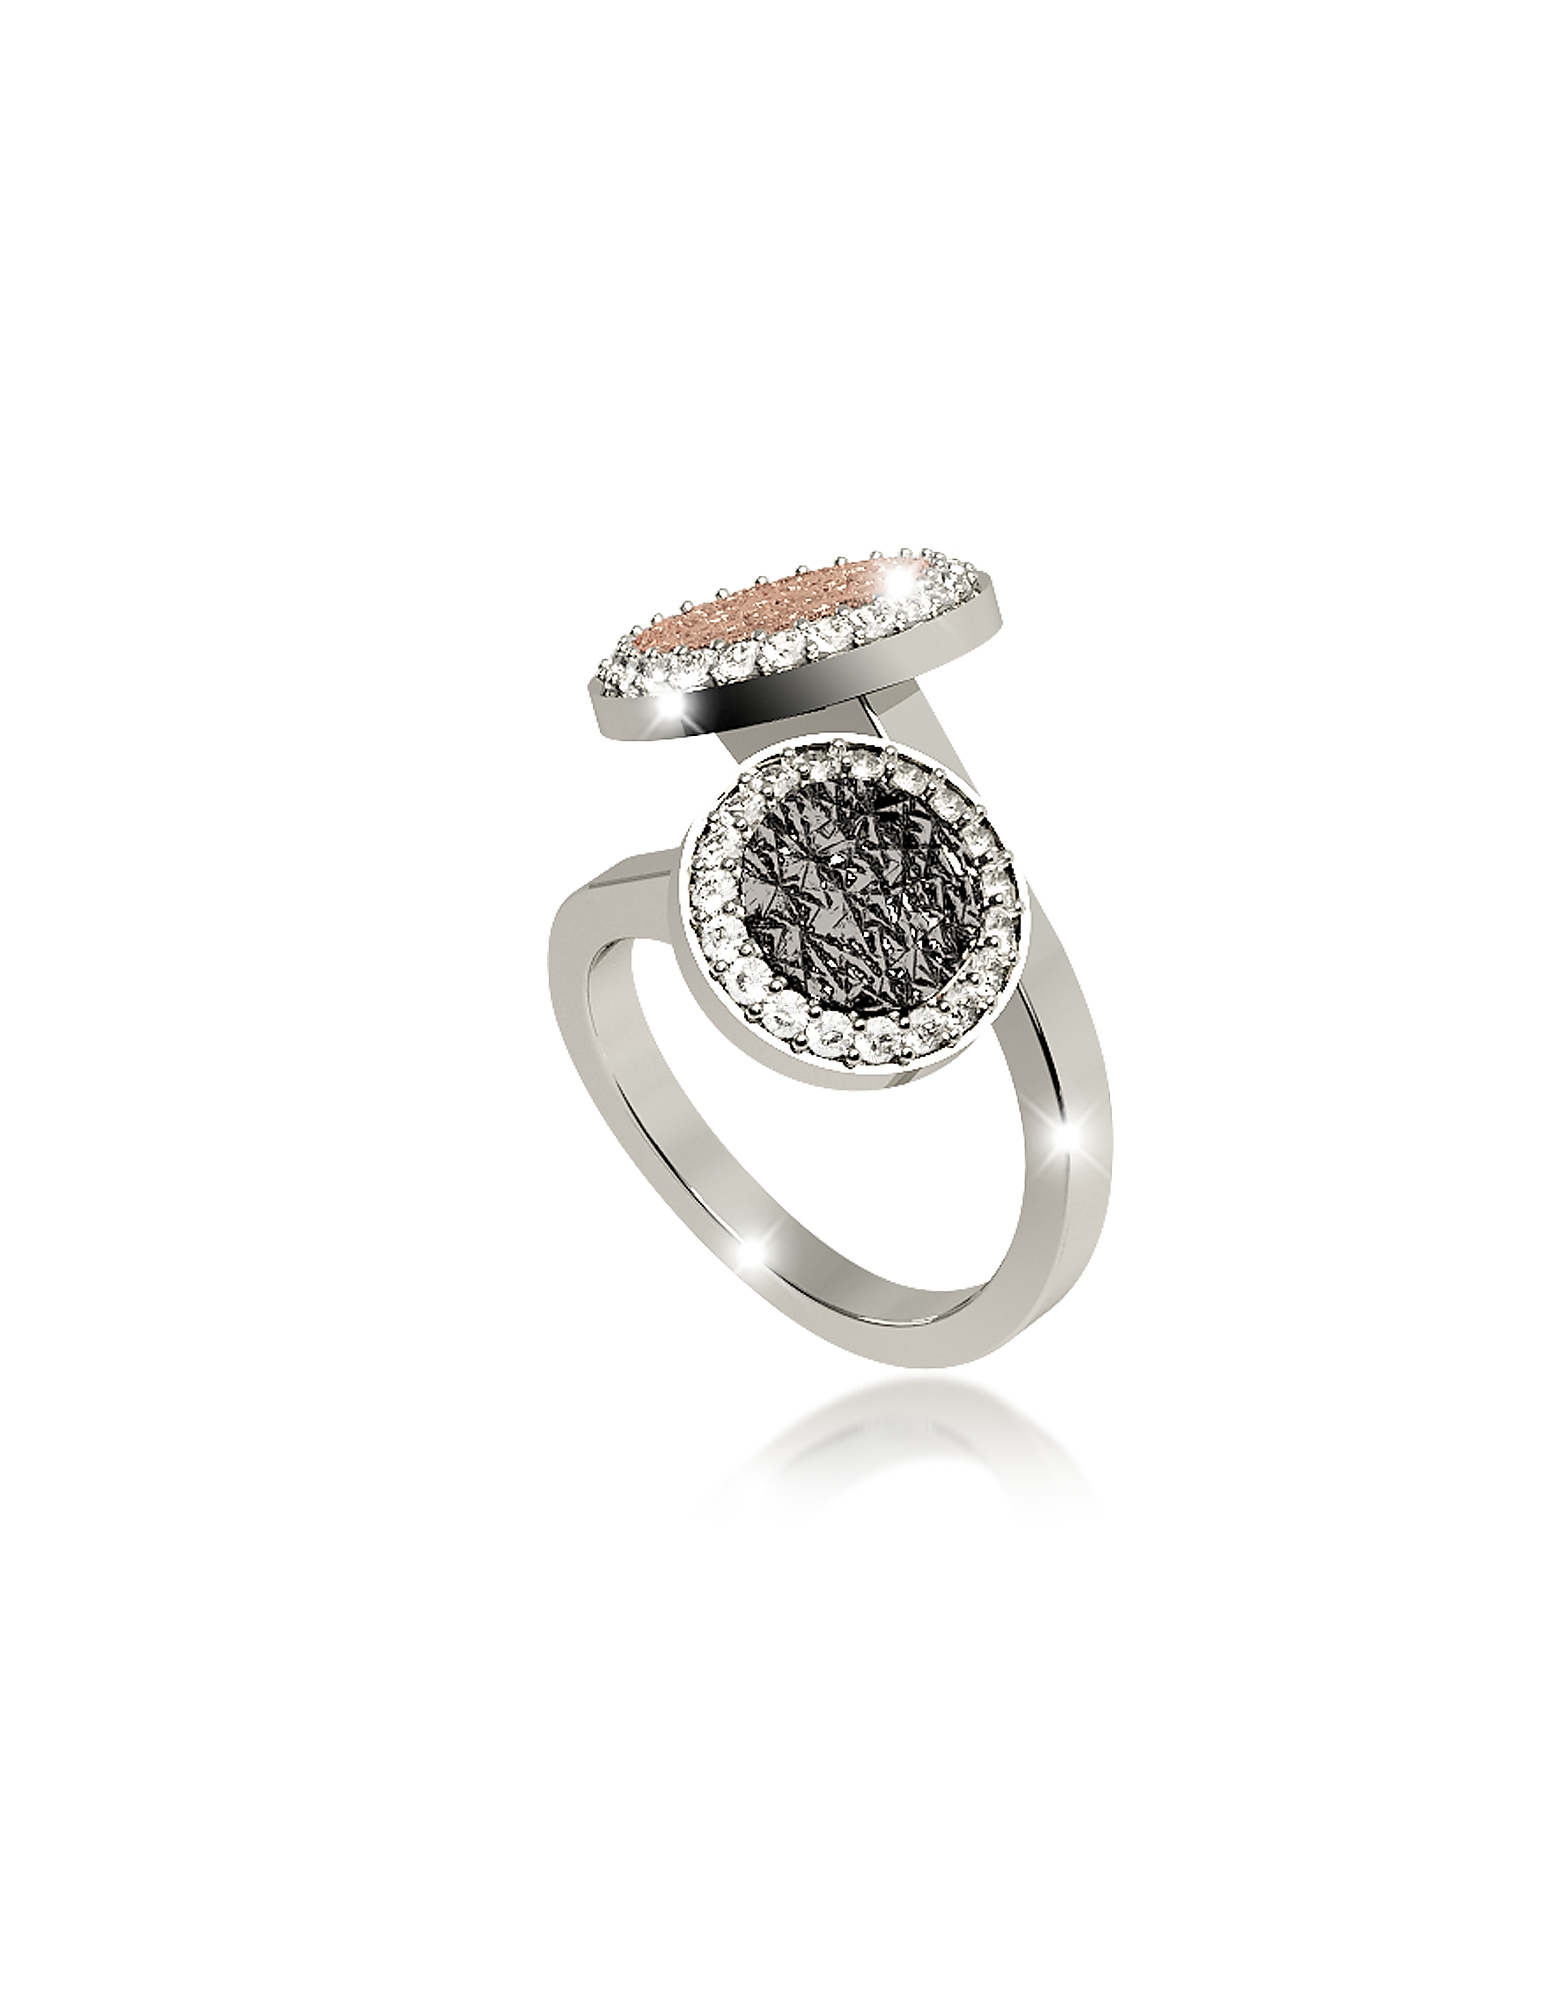 Rebecca Rings, R-Zero Rhodium Over Bronze Ring w/Two Tones Stones